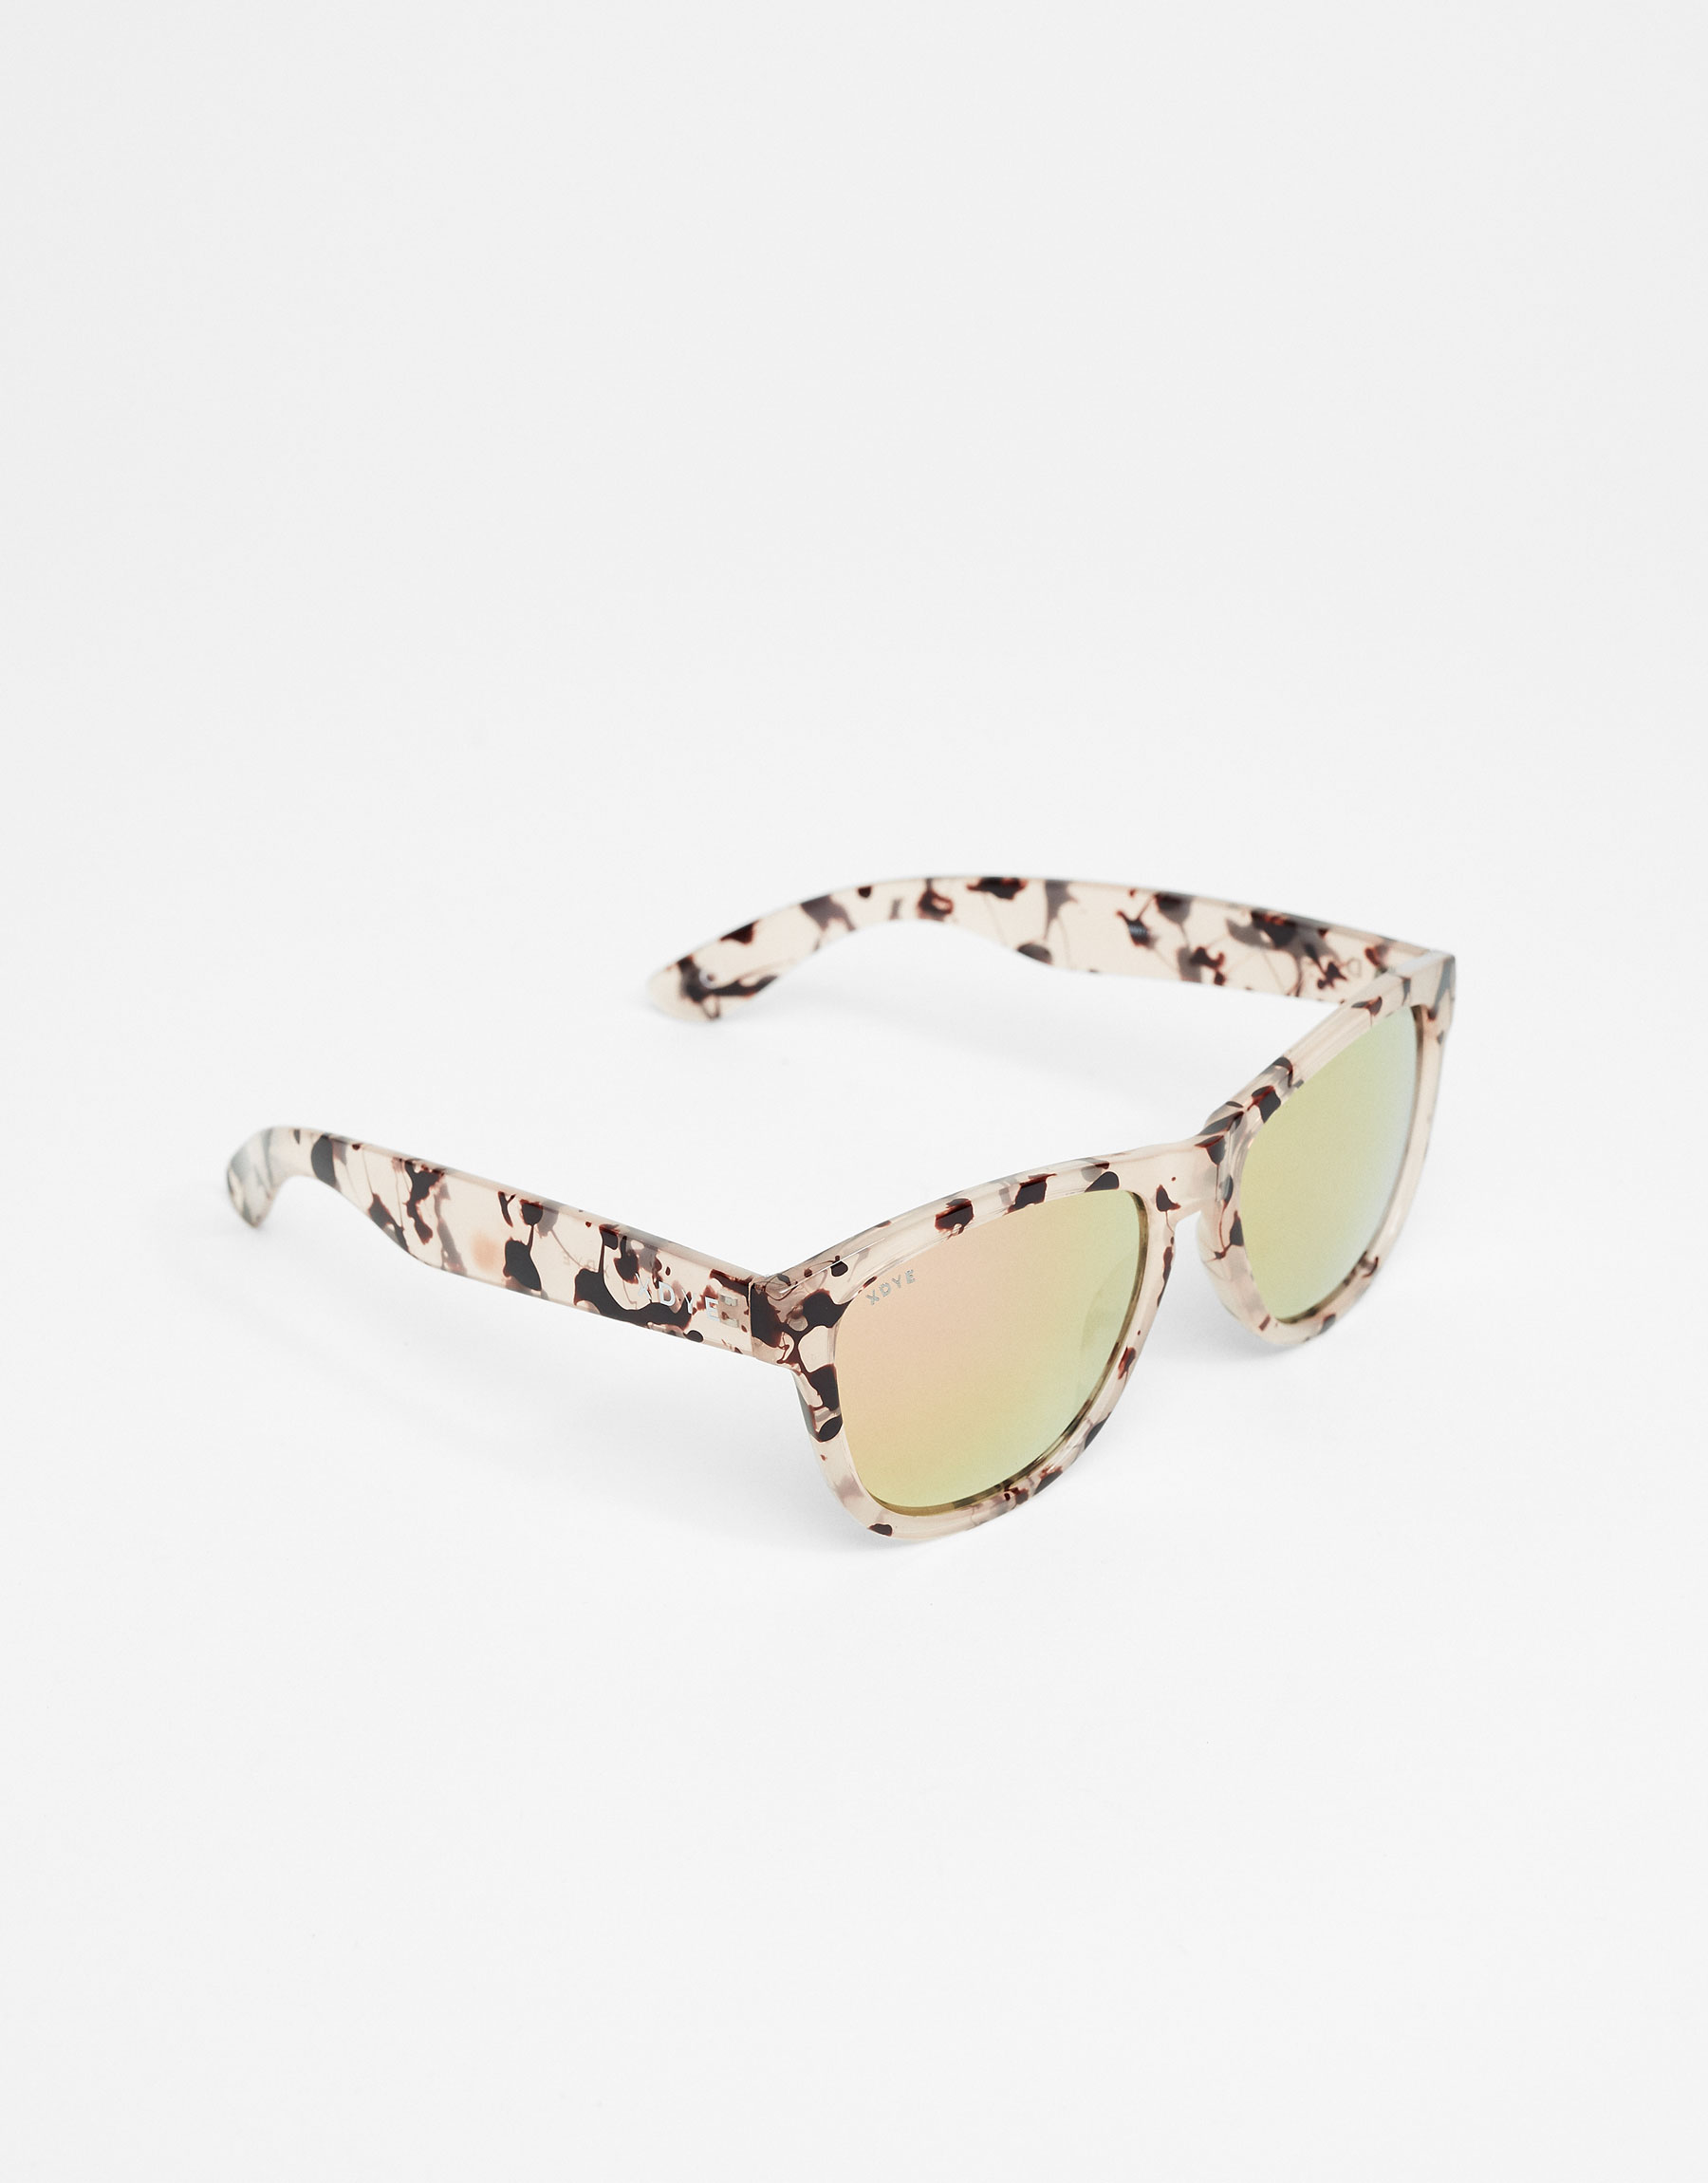 XDYE Sunglasses - Wave